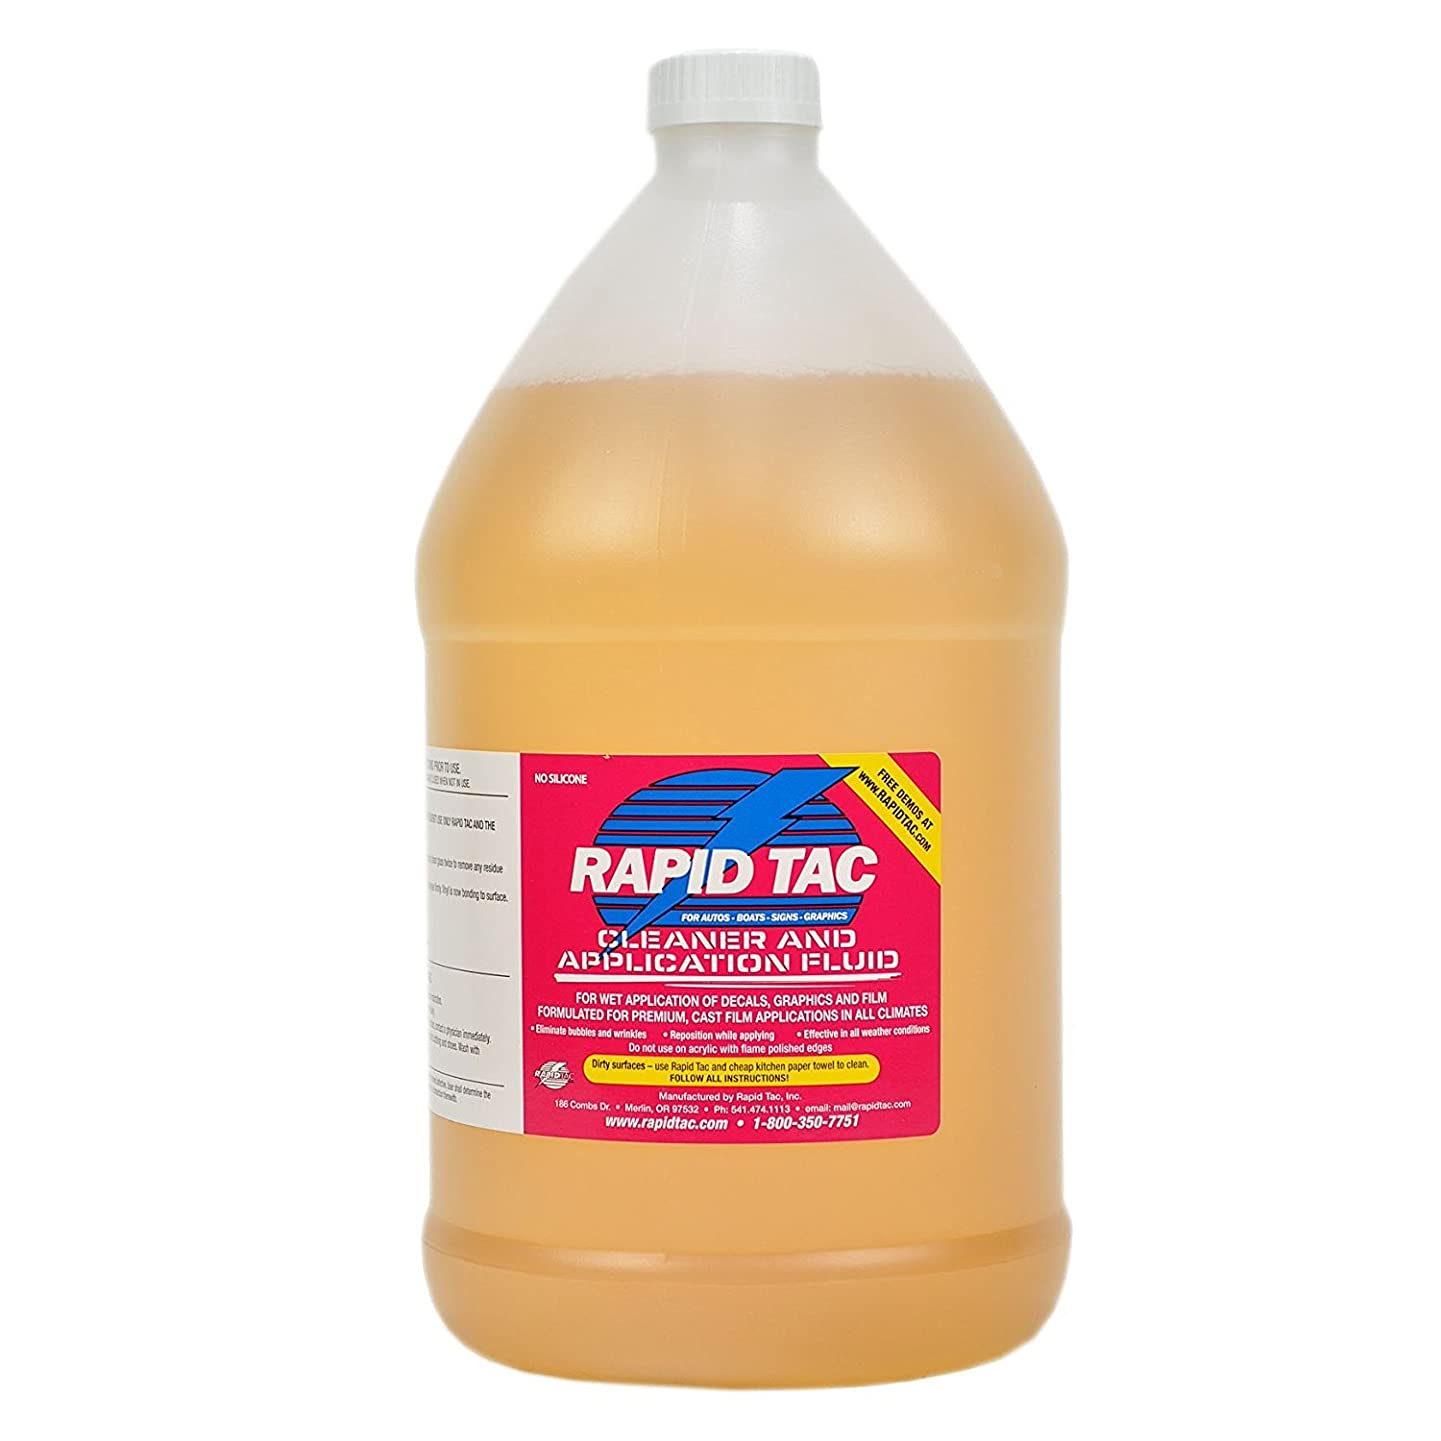 RapidTac RT-11281-5 Application Fluid for Vinyl Wraps Decals Stickers y326052702632088